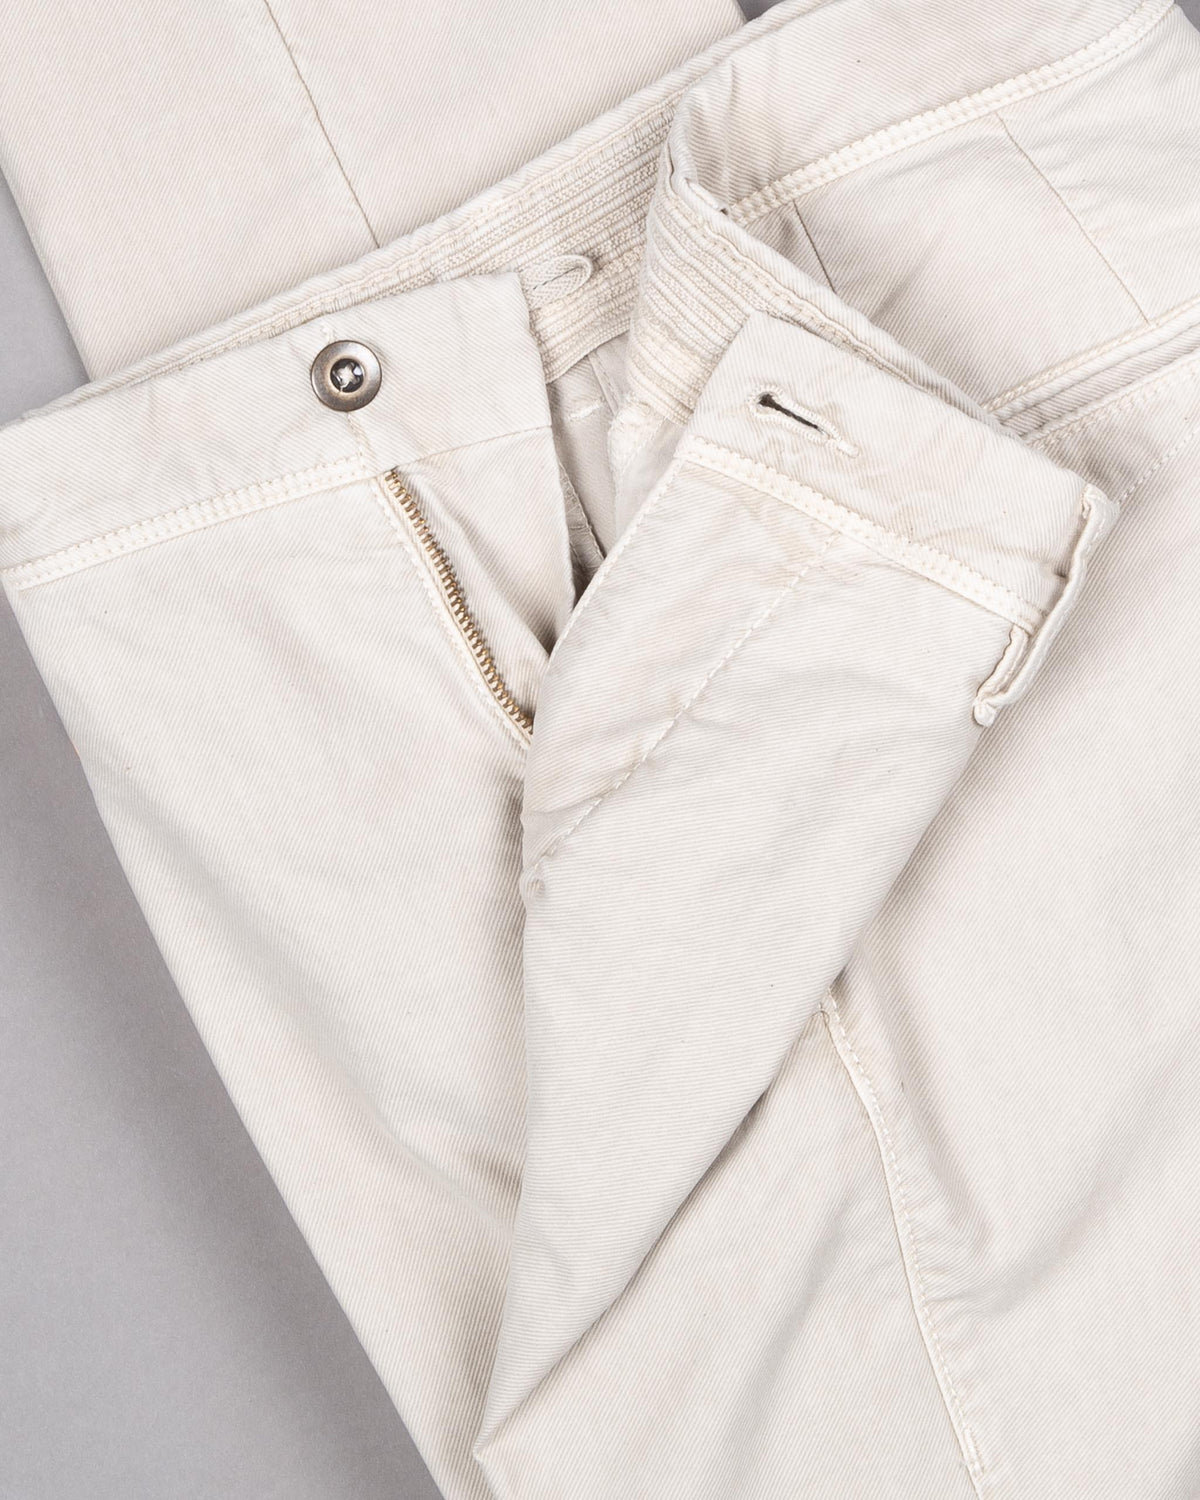 'Slacks' Cotton Trousers